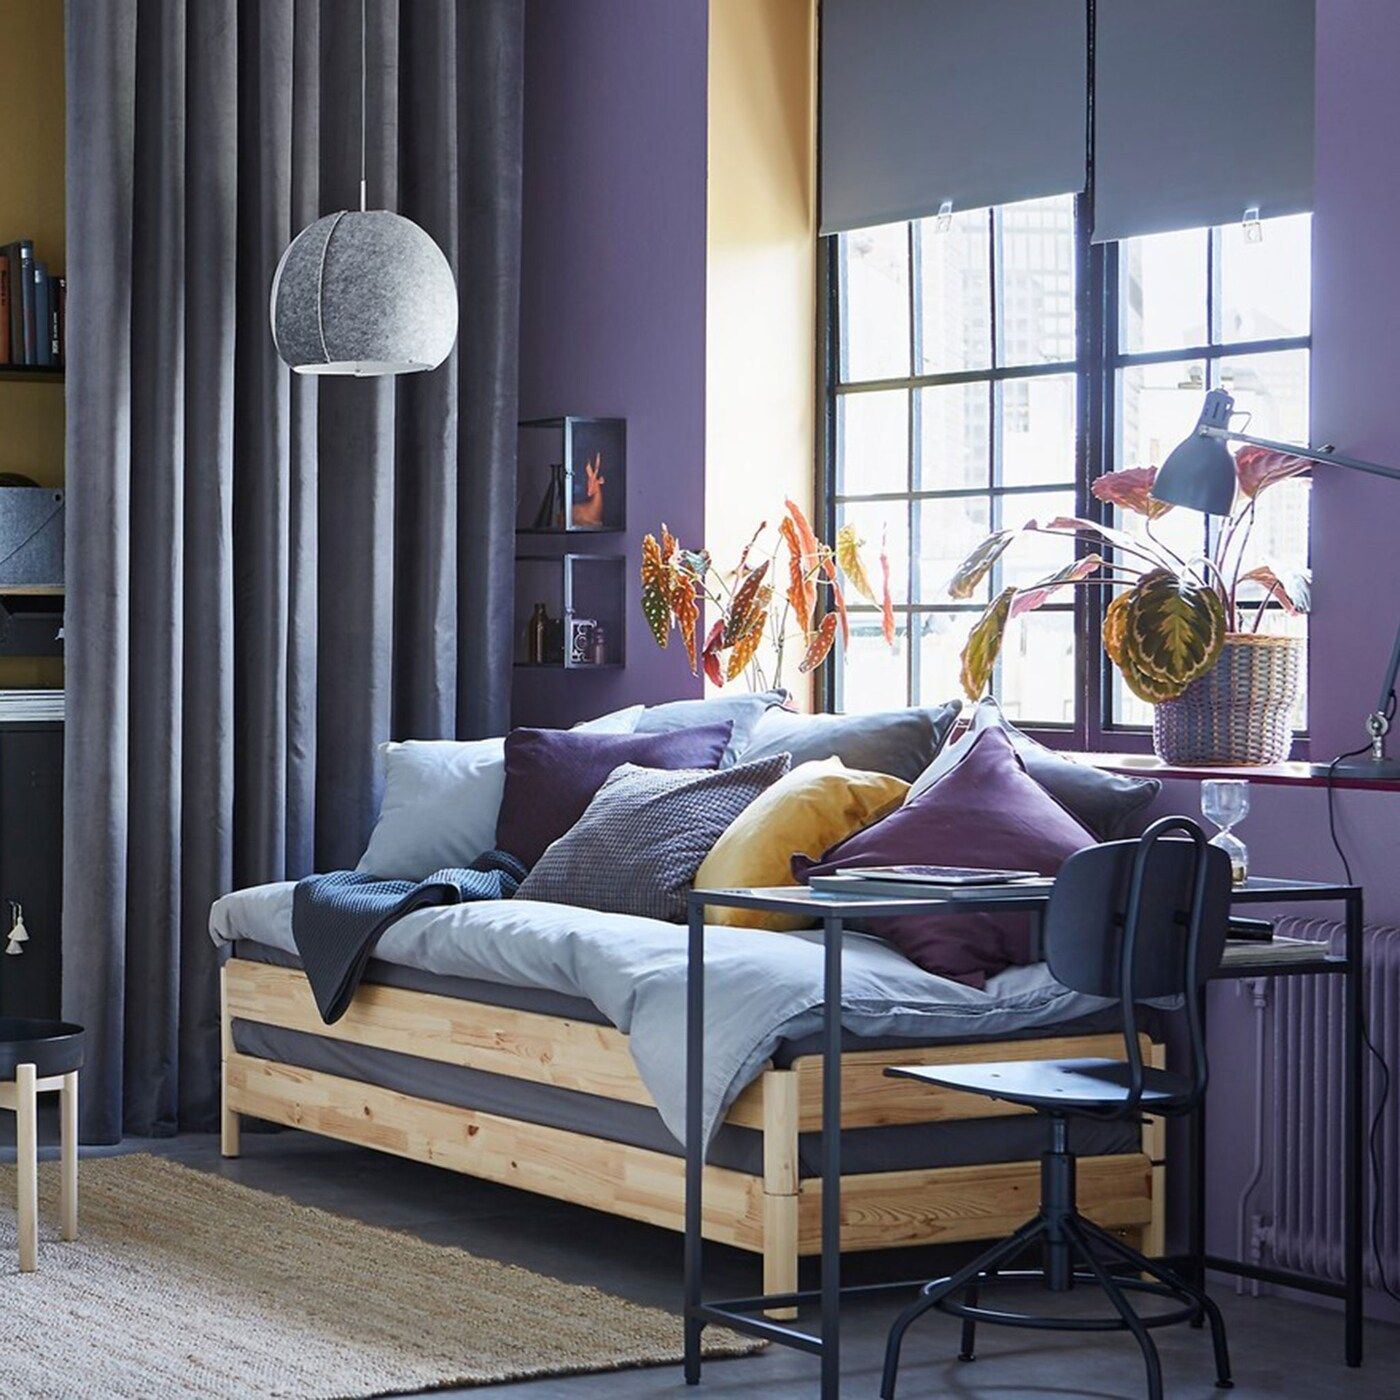 The threeinone bed Bedroom inspirations, One bed, Bed